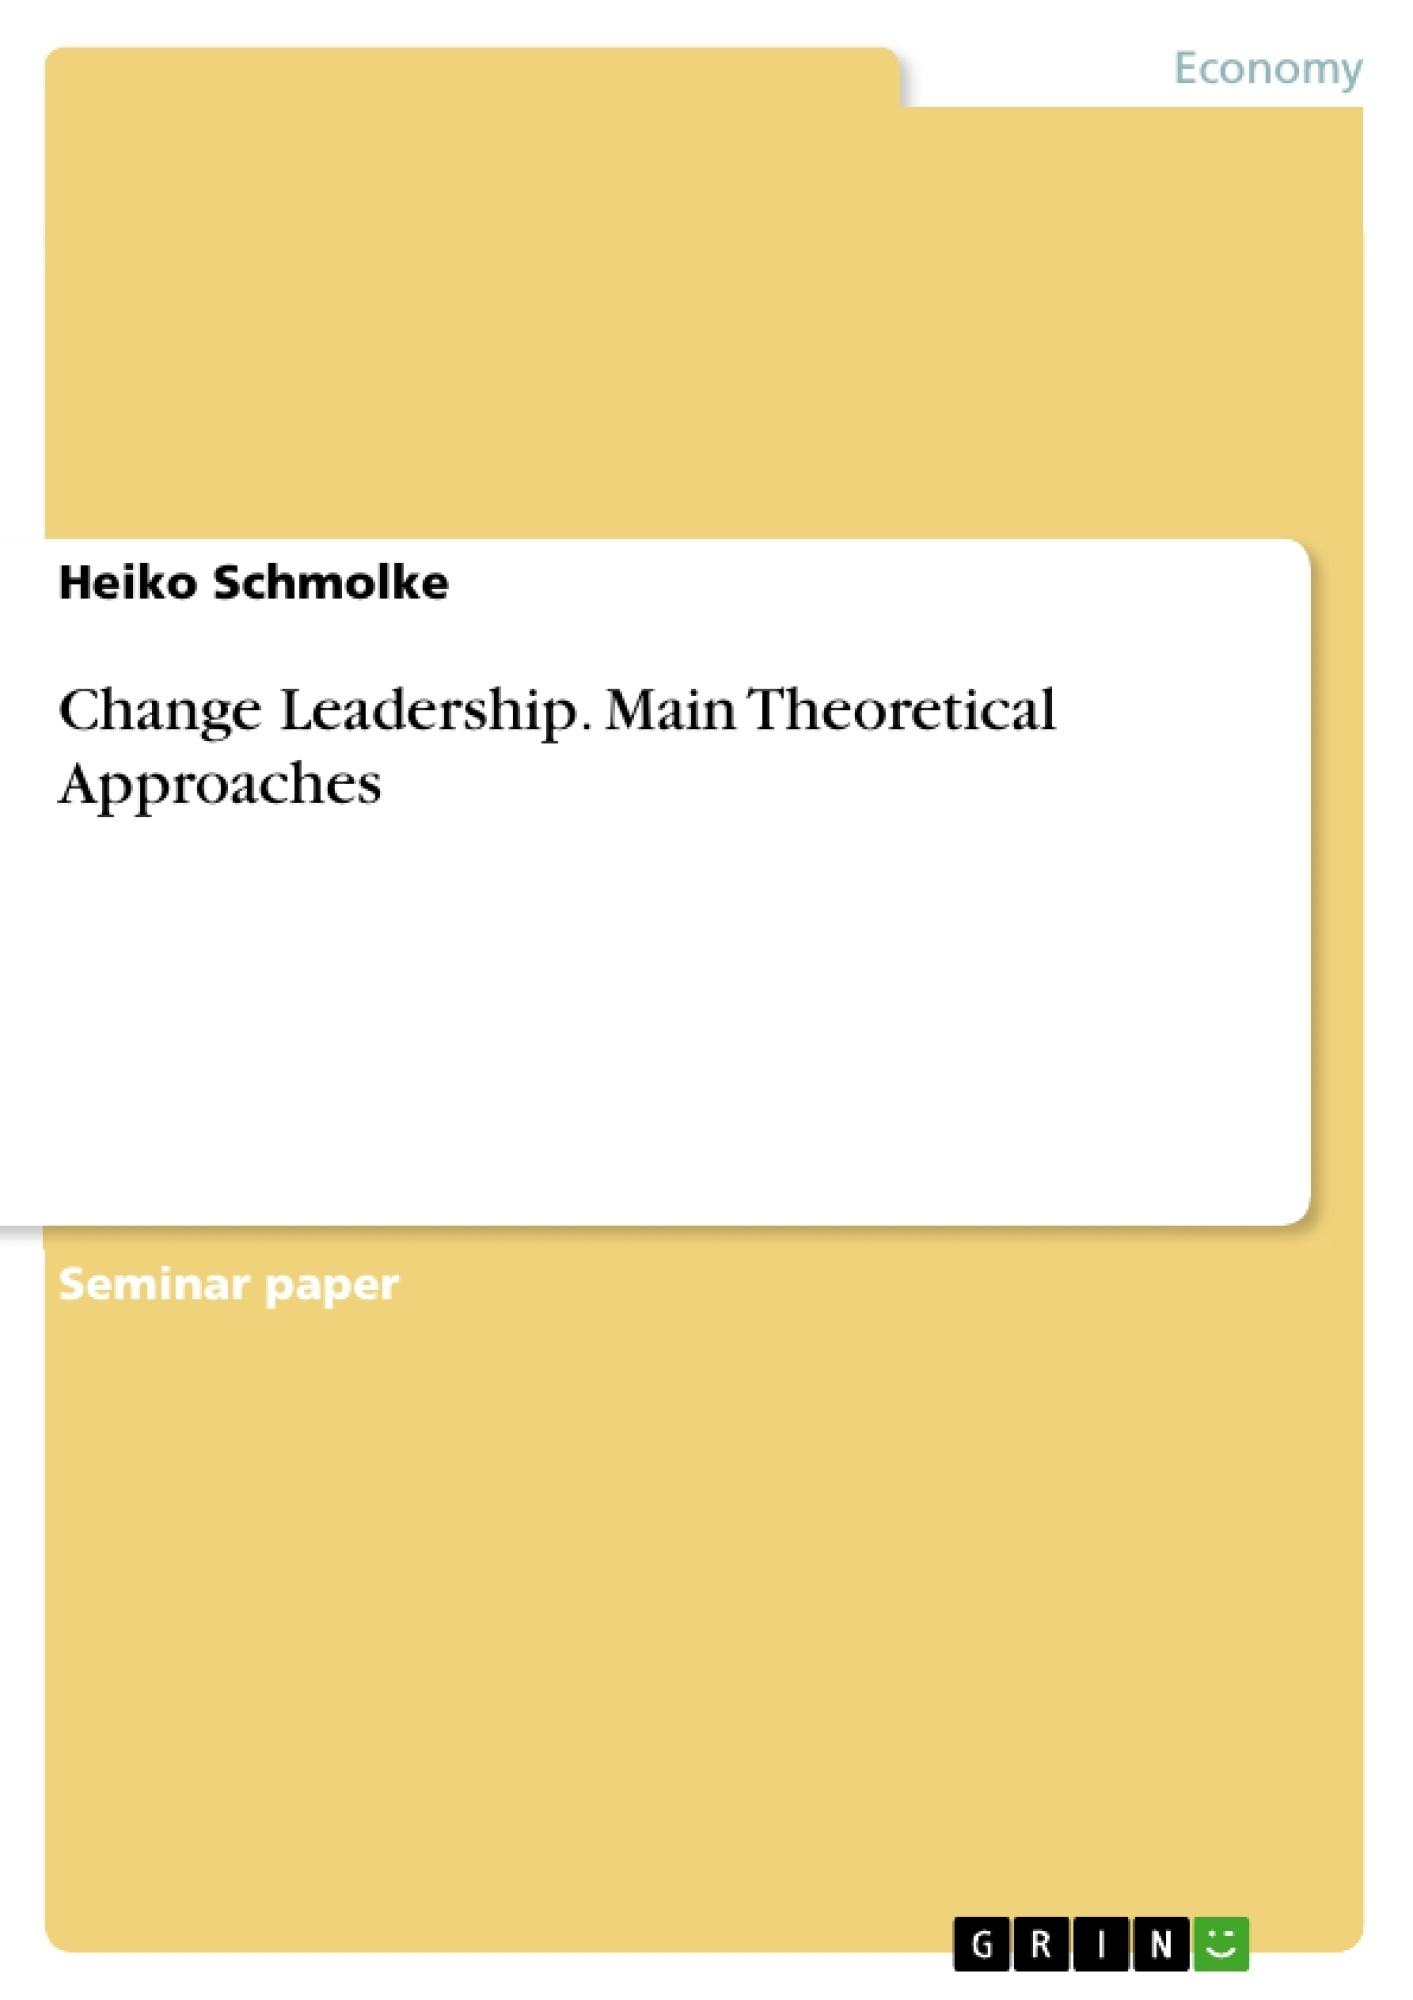 Title: Change Leadership. Main Theoretical Approaches